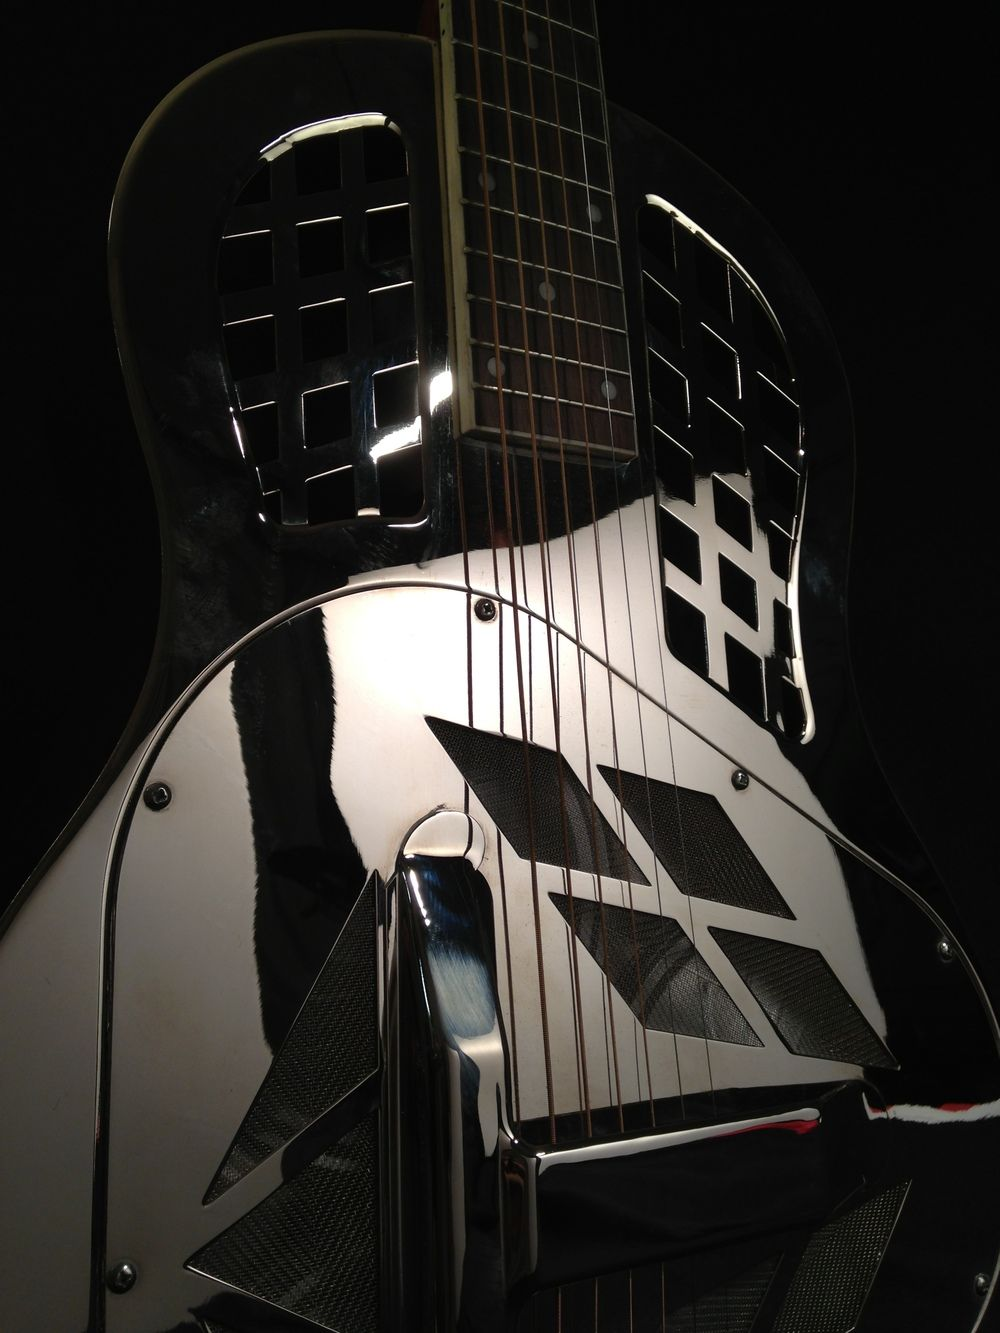 Classic Polished Nickel Tricone Guitar, Resonator guitar